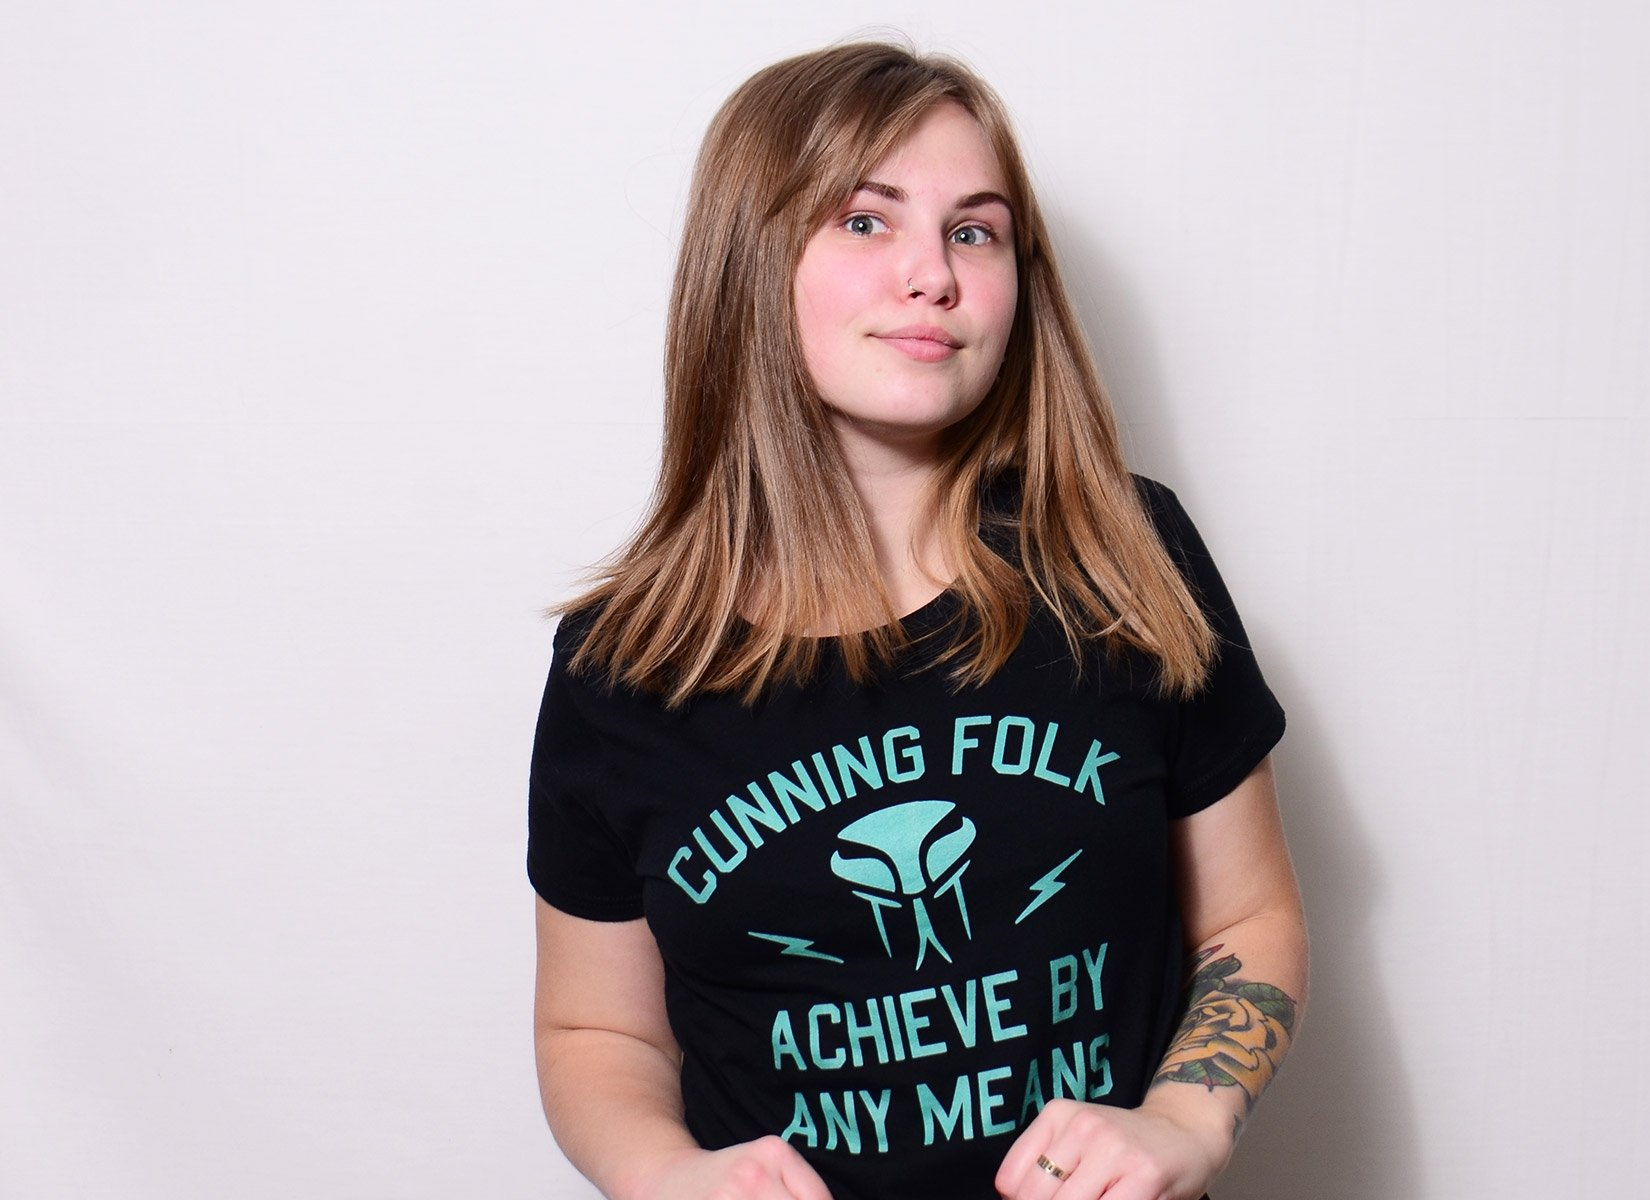 Cunning Folk Achieve By Any Means on Womens T-Shirt